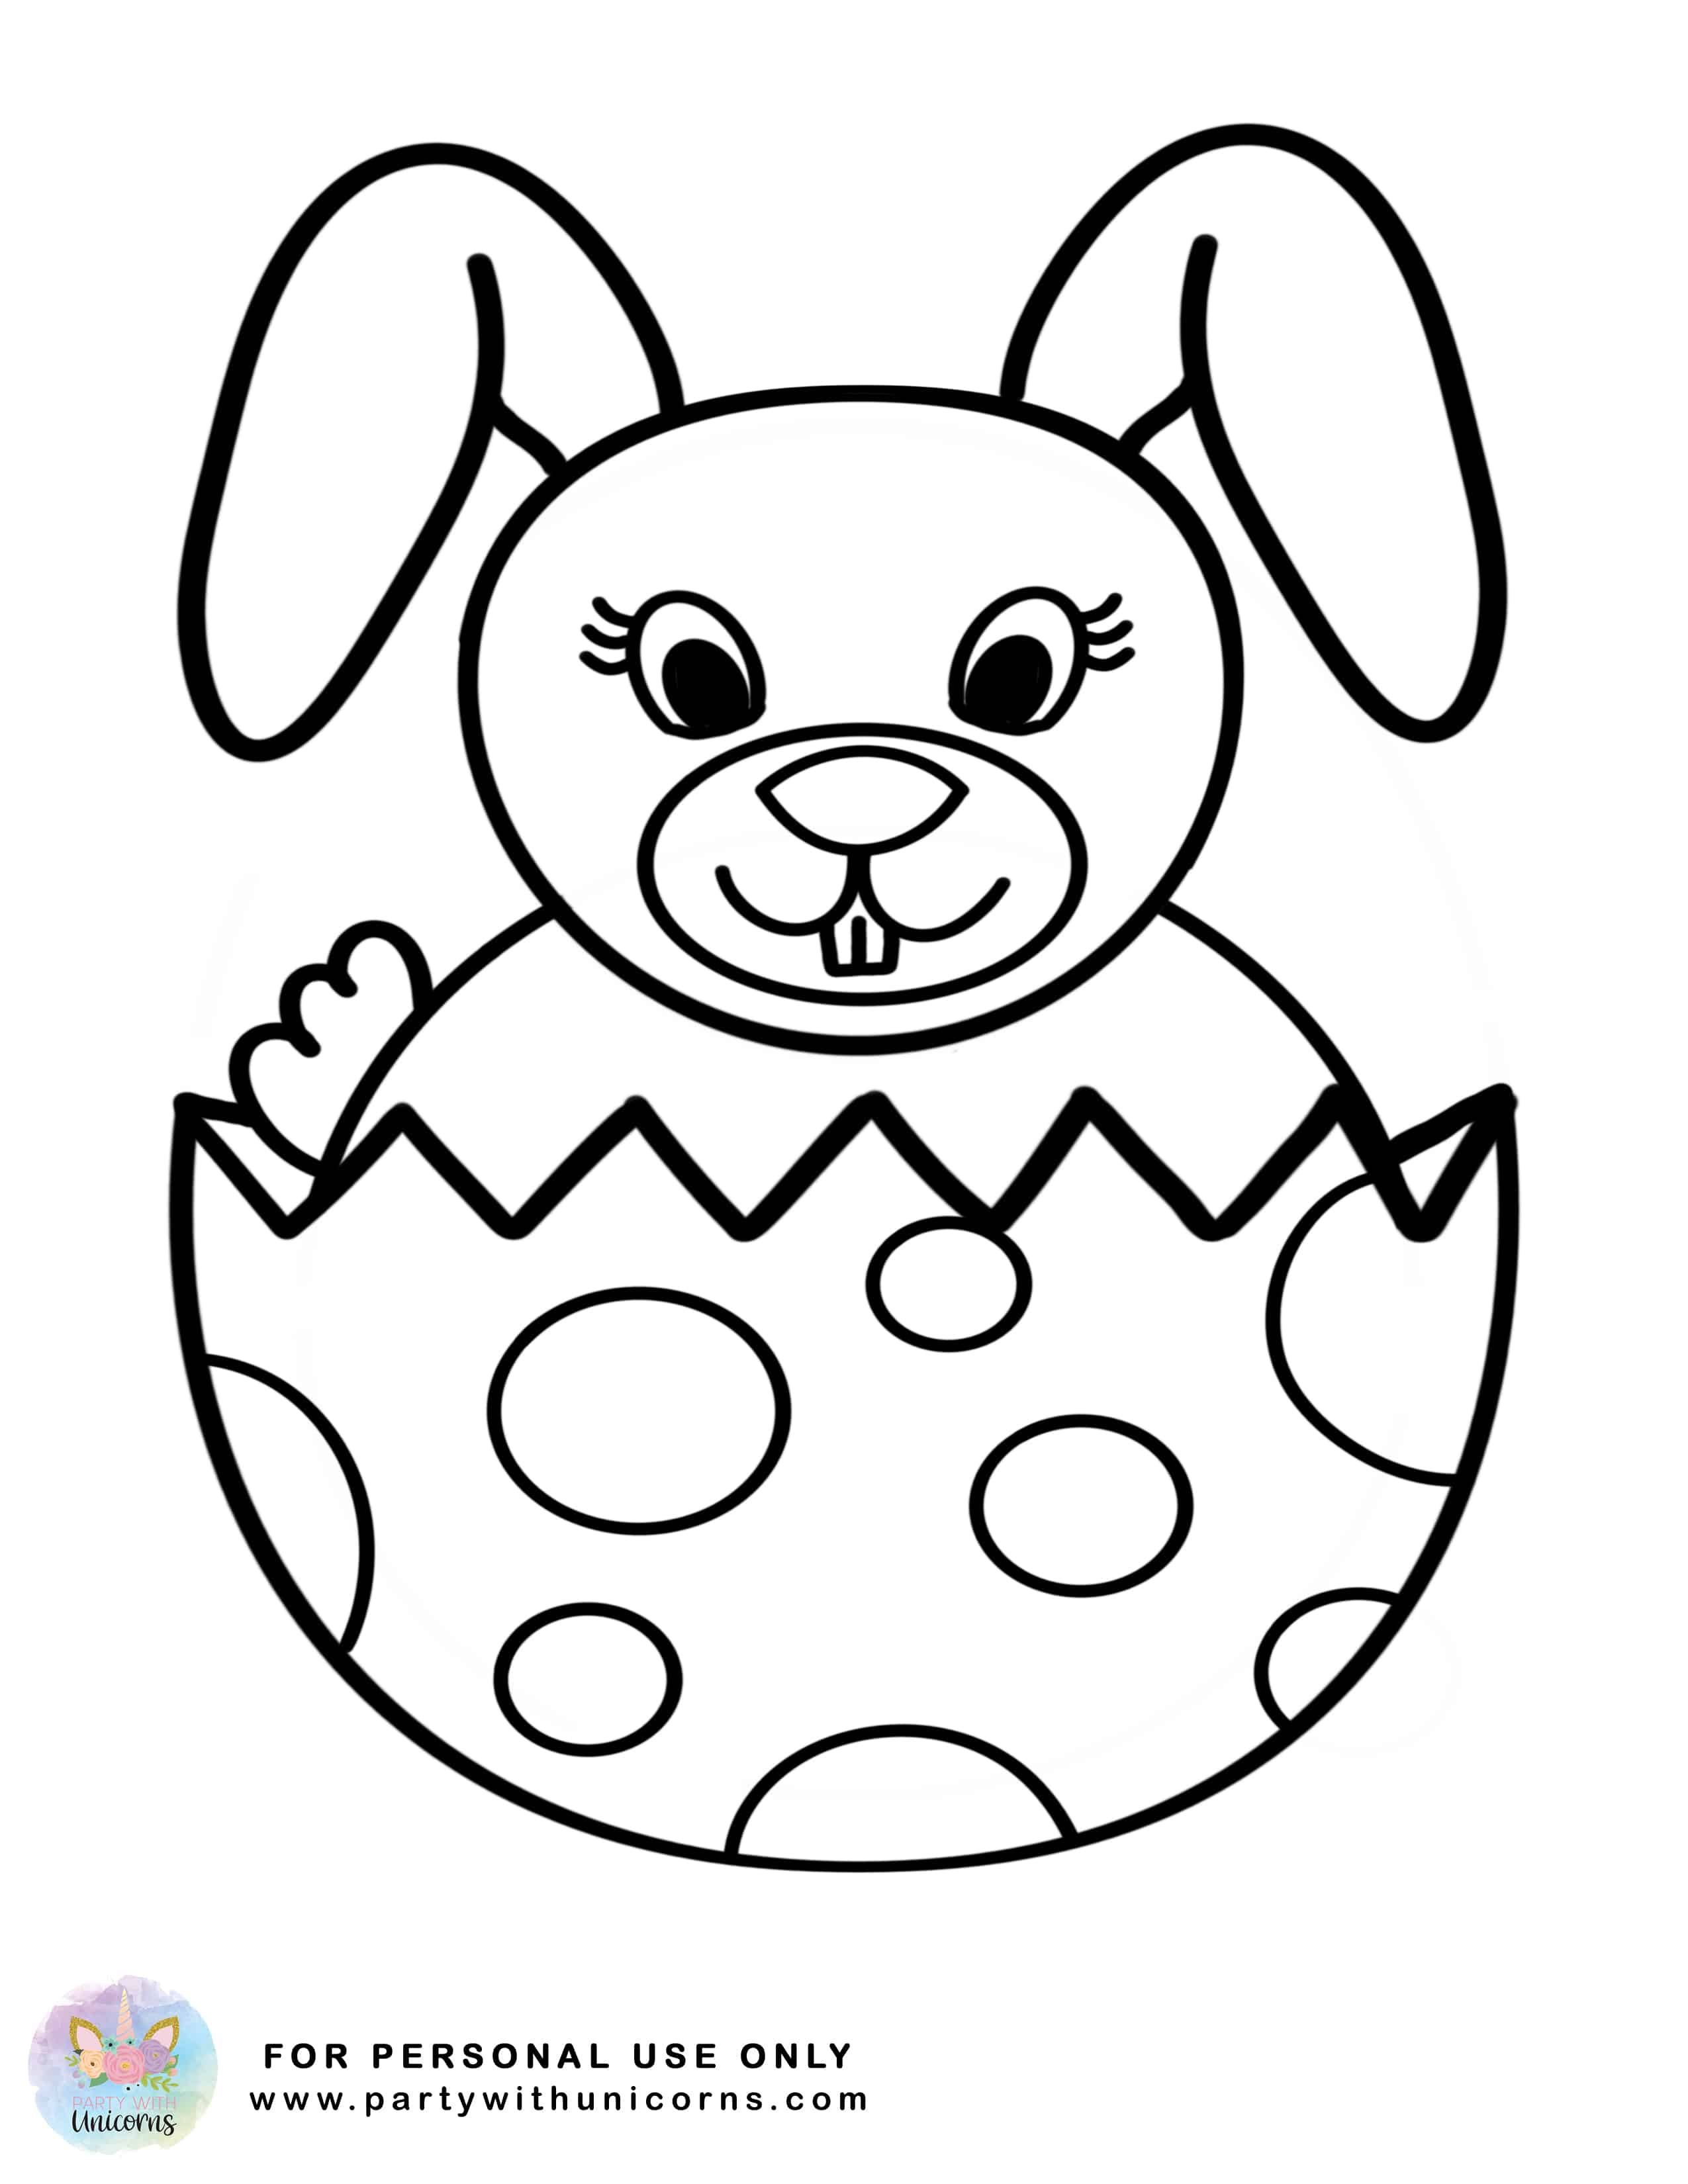 printable easter coloring pages easter coloring sheets free download party with unicorns easter pages printable coloring